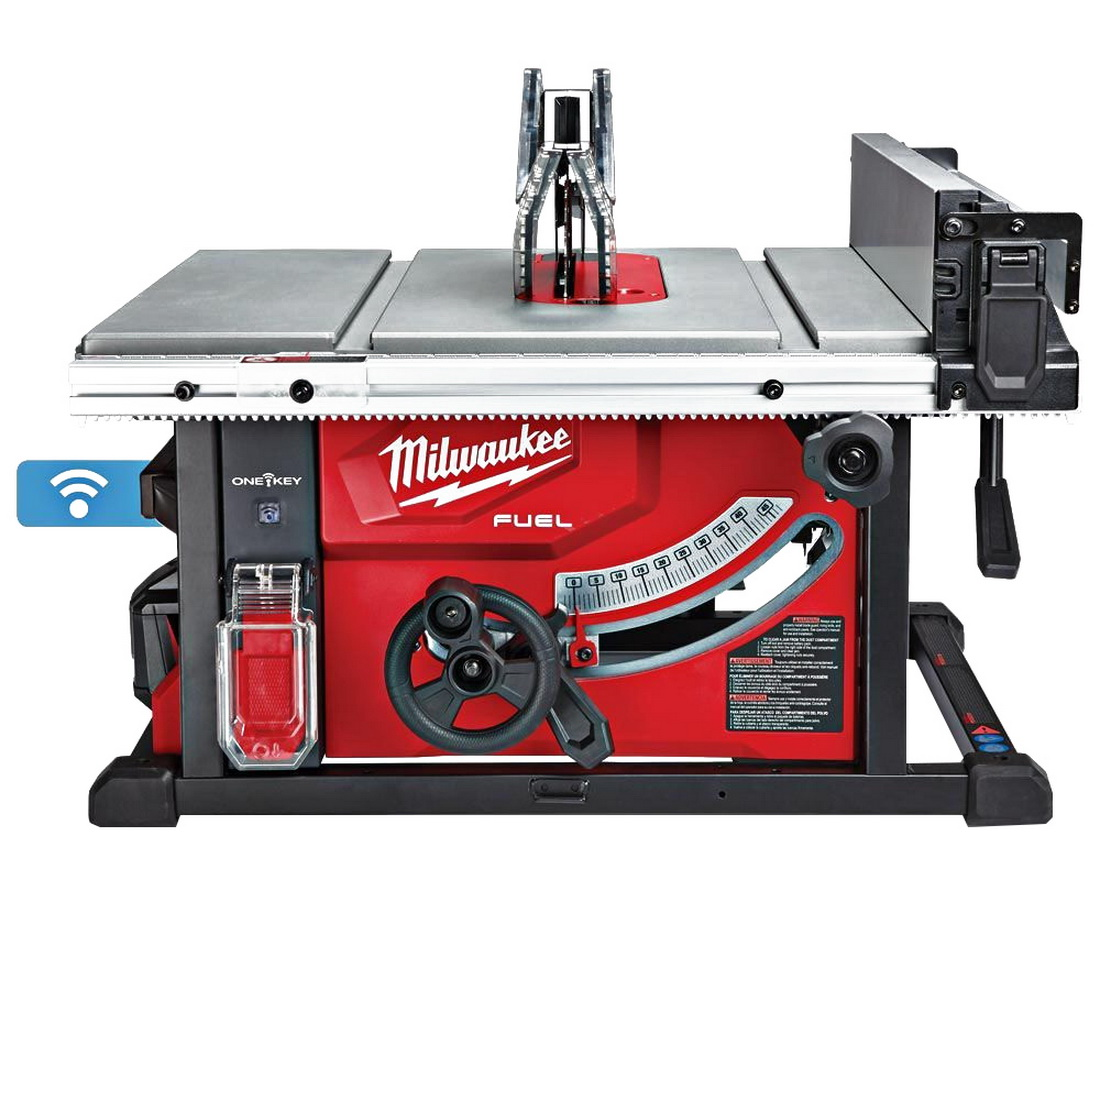 M18 FUEL ONE-KEY Table Saw 210mm